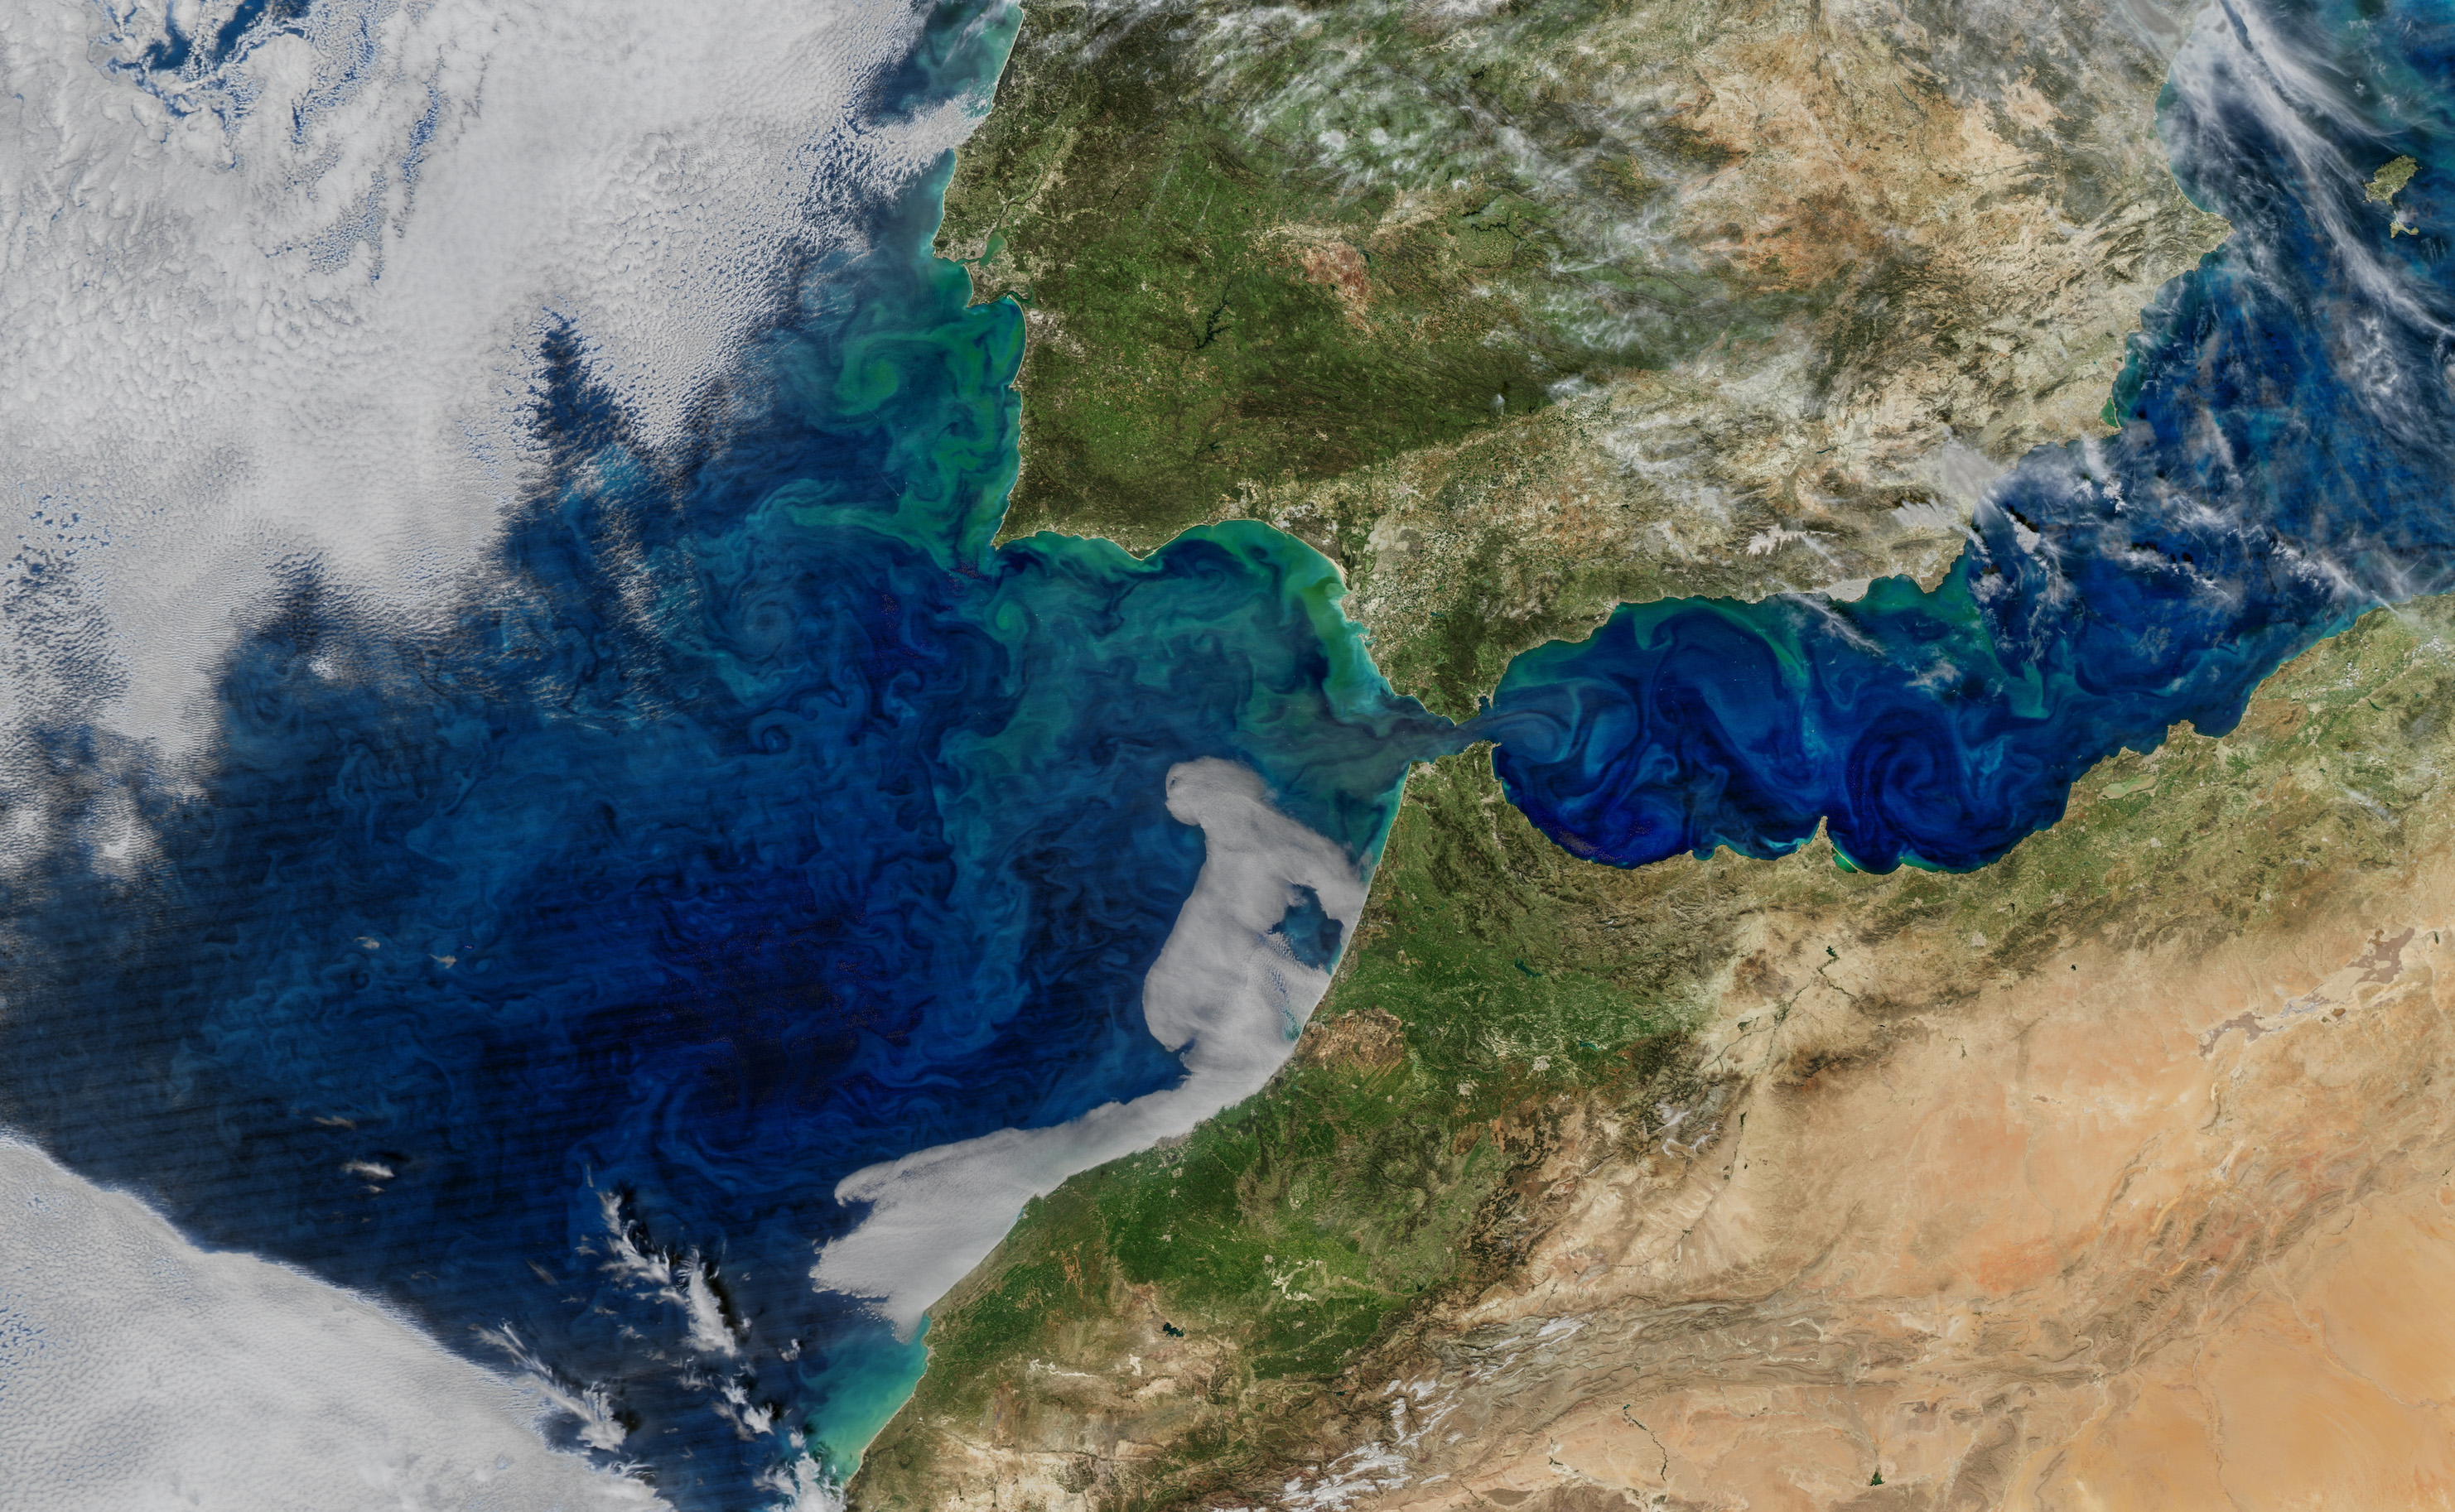 Today's Image of the Day comes courtesy of the NASA Earth Observatory and features a look at phytoplankton blooms off the coast of Spain.